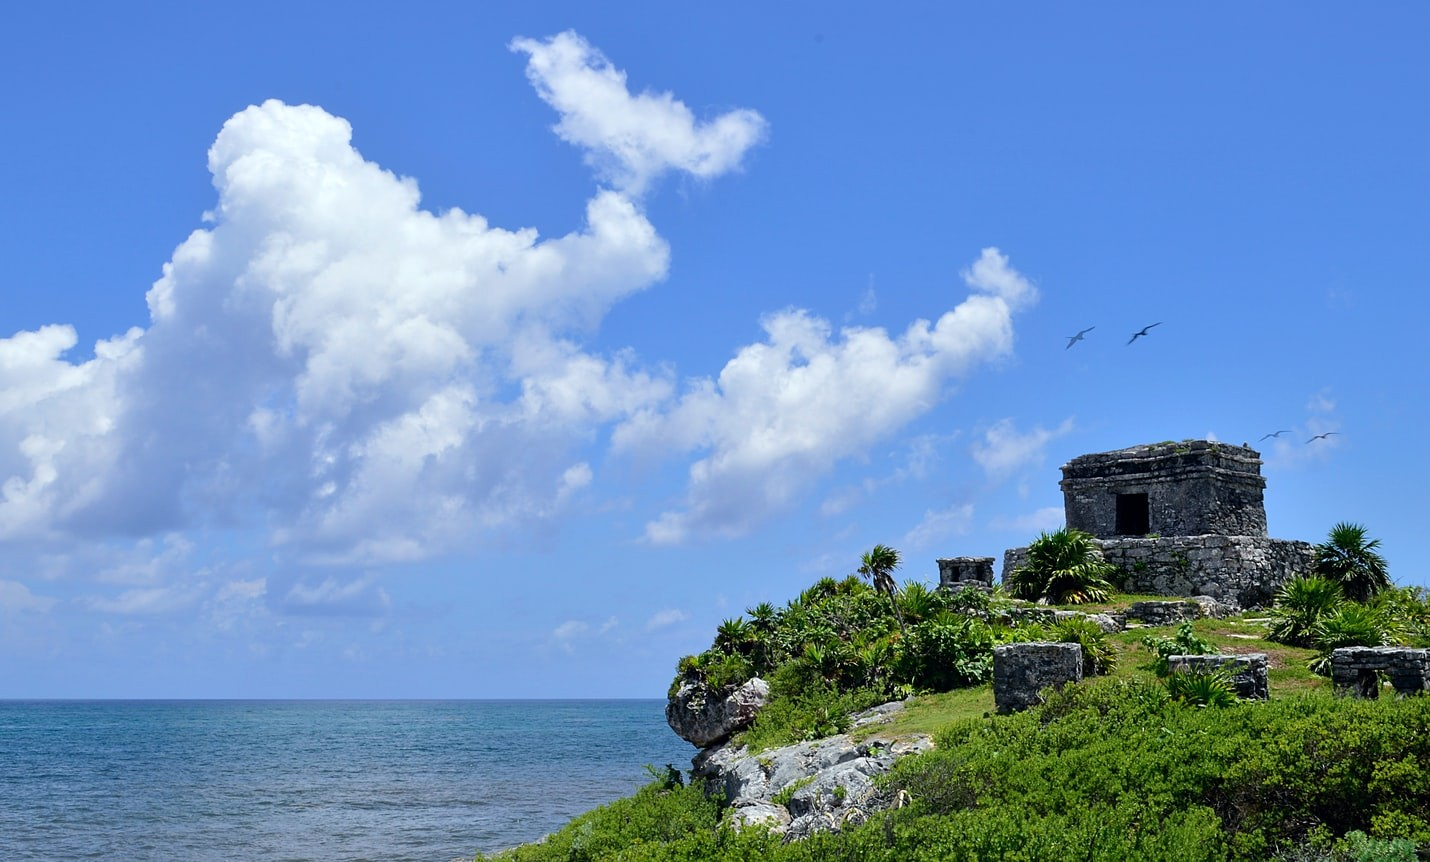 The Best Areas to Stay in Tulum, Mexico